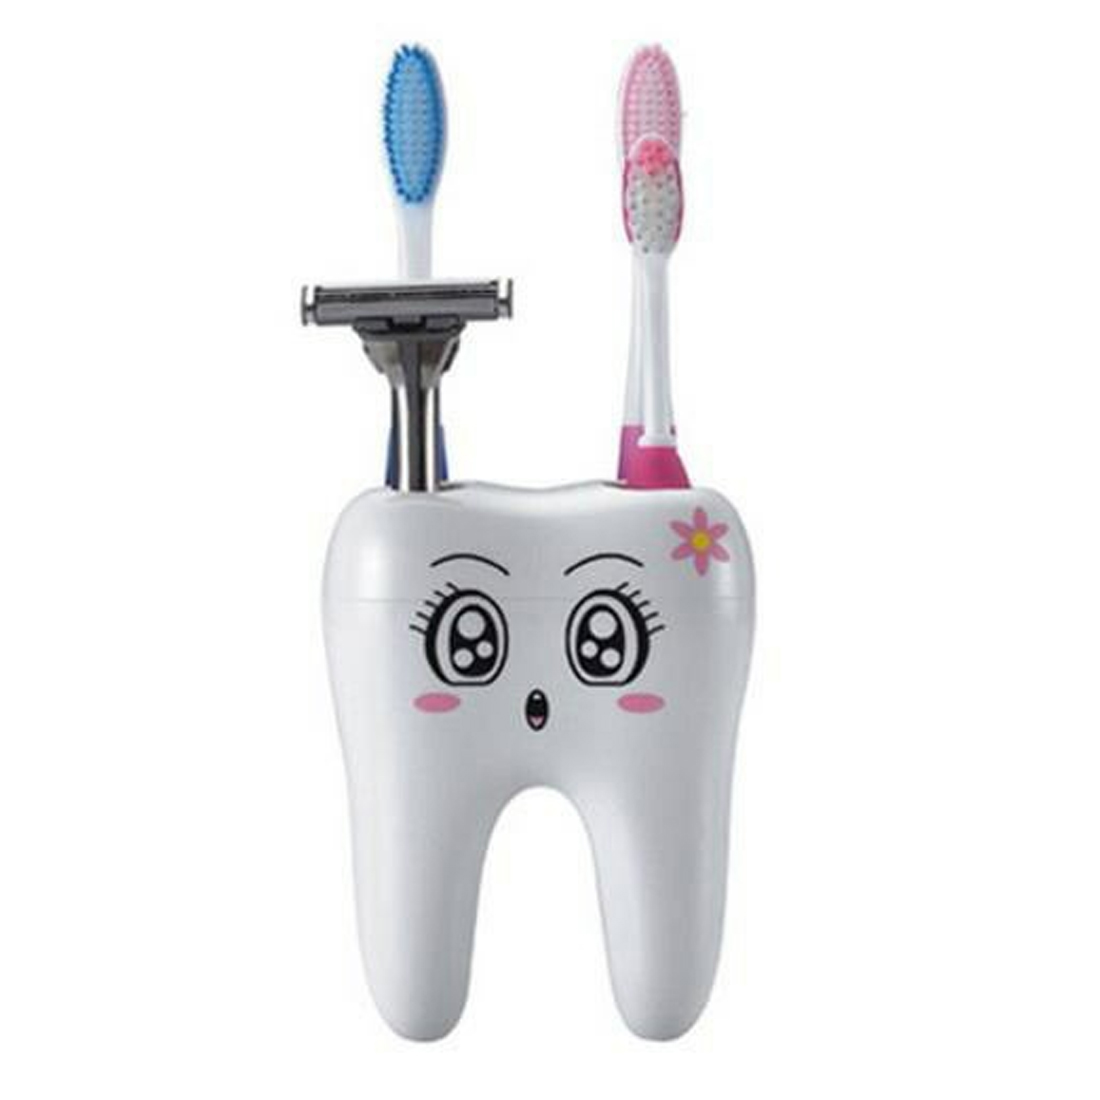 4 Hole Cartoon Toothbrush Stand Tooth Brush Shelf Bracket Container Bathroom Accessories ...